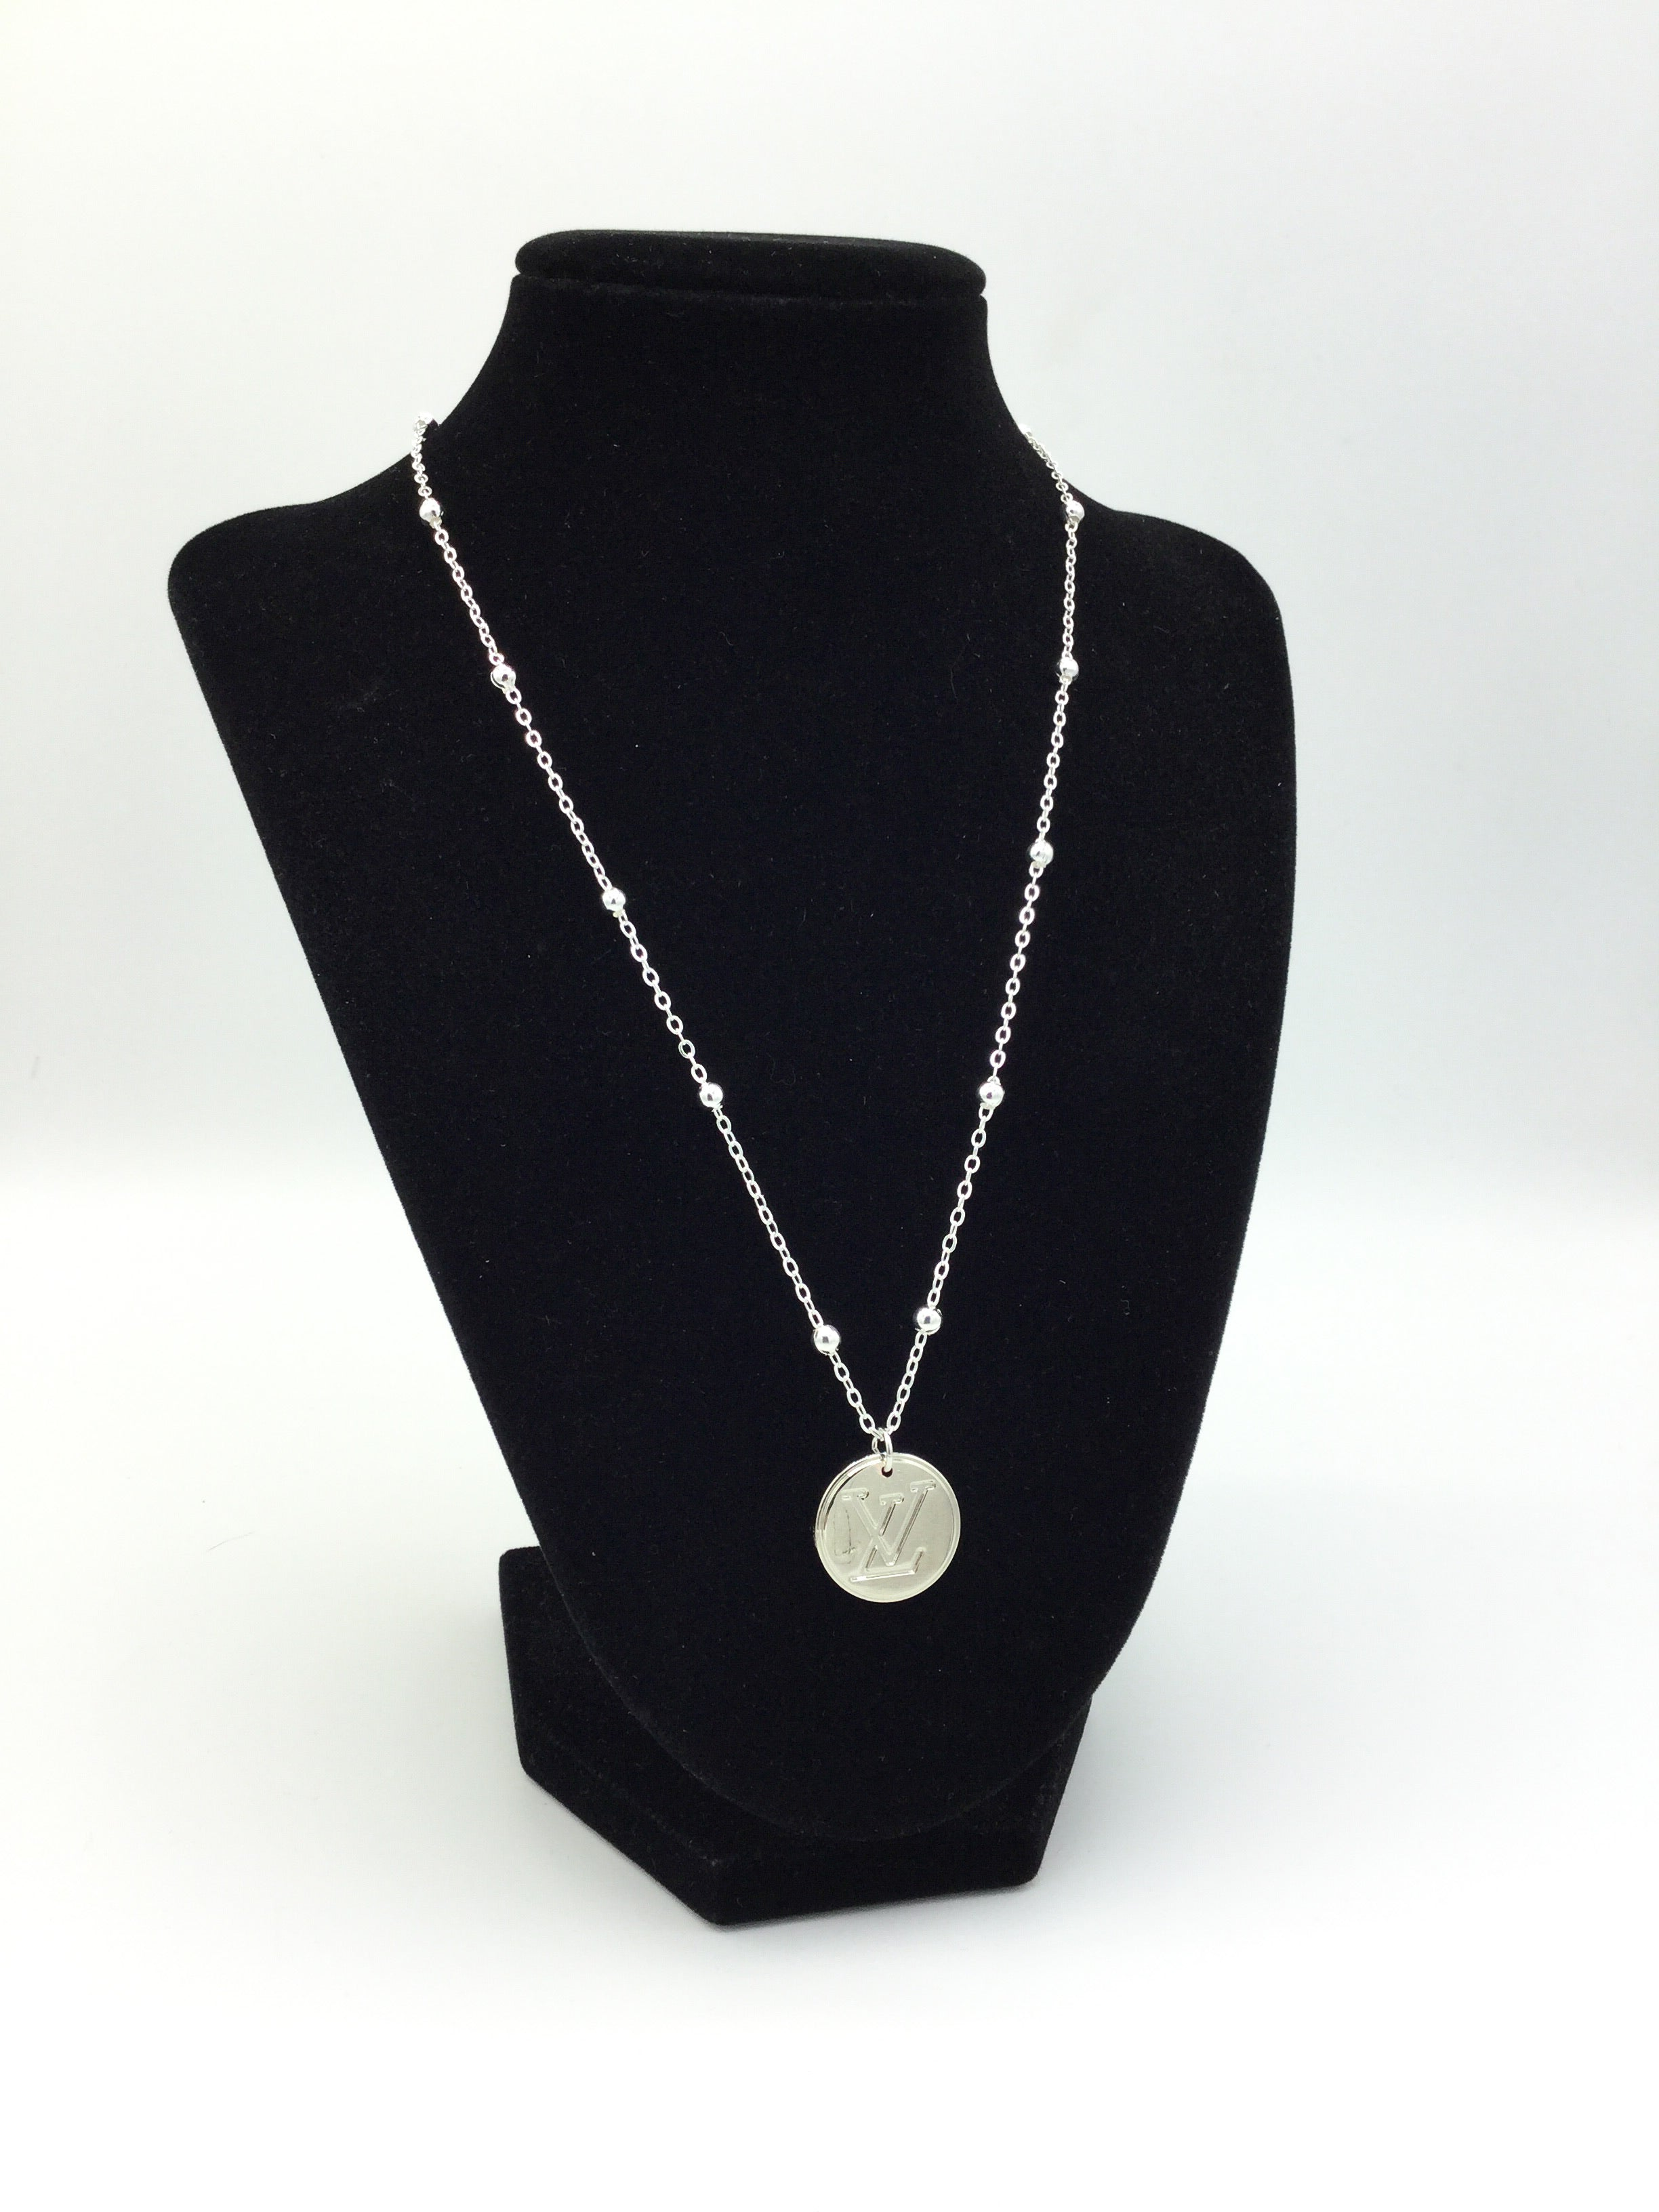 Silver Button Necklace with Fancy Chain by Designer Therapy